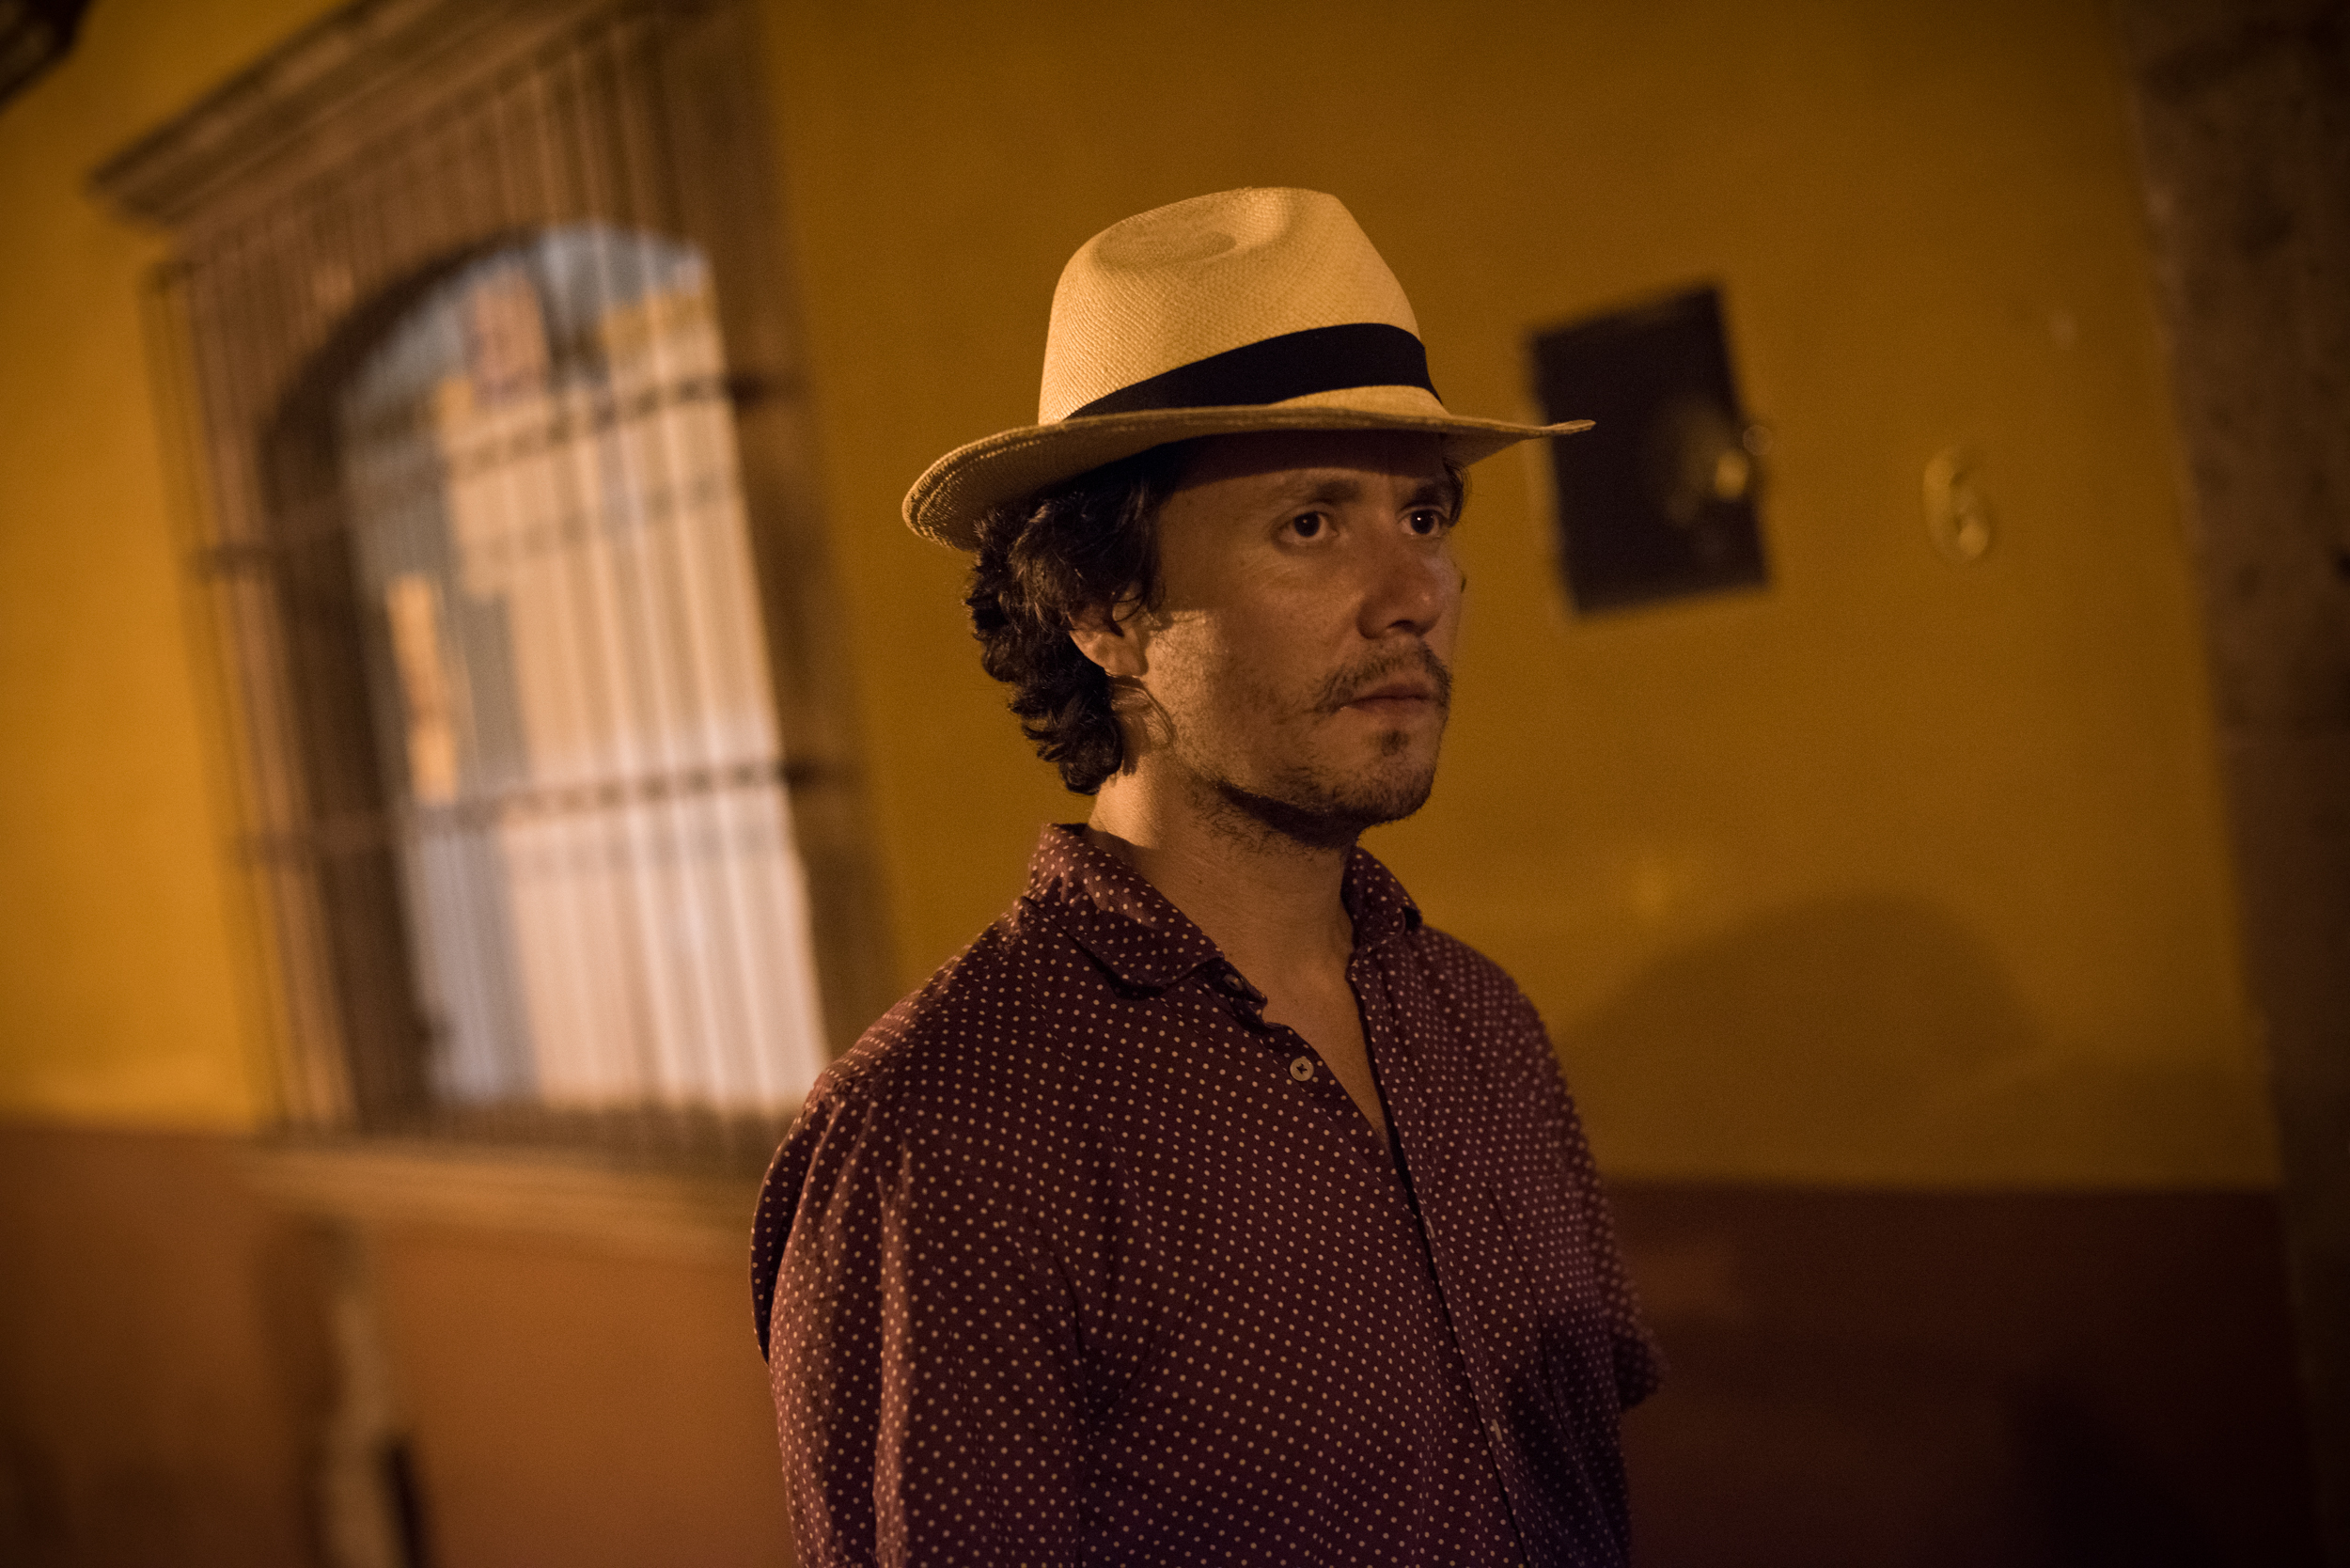 Costa Rican Director Neto Villalobos' Latest Film Documents a Romantic Relationship in Real Time